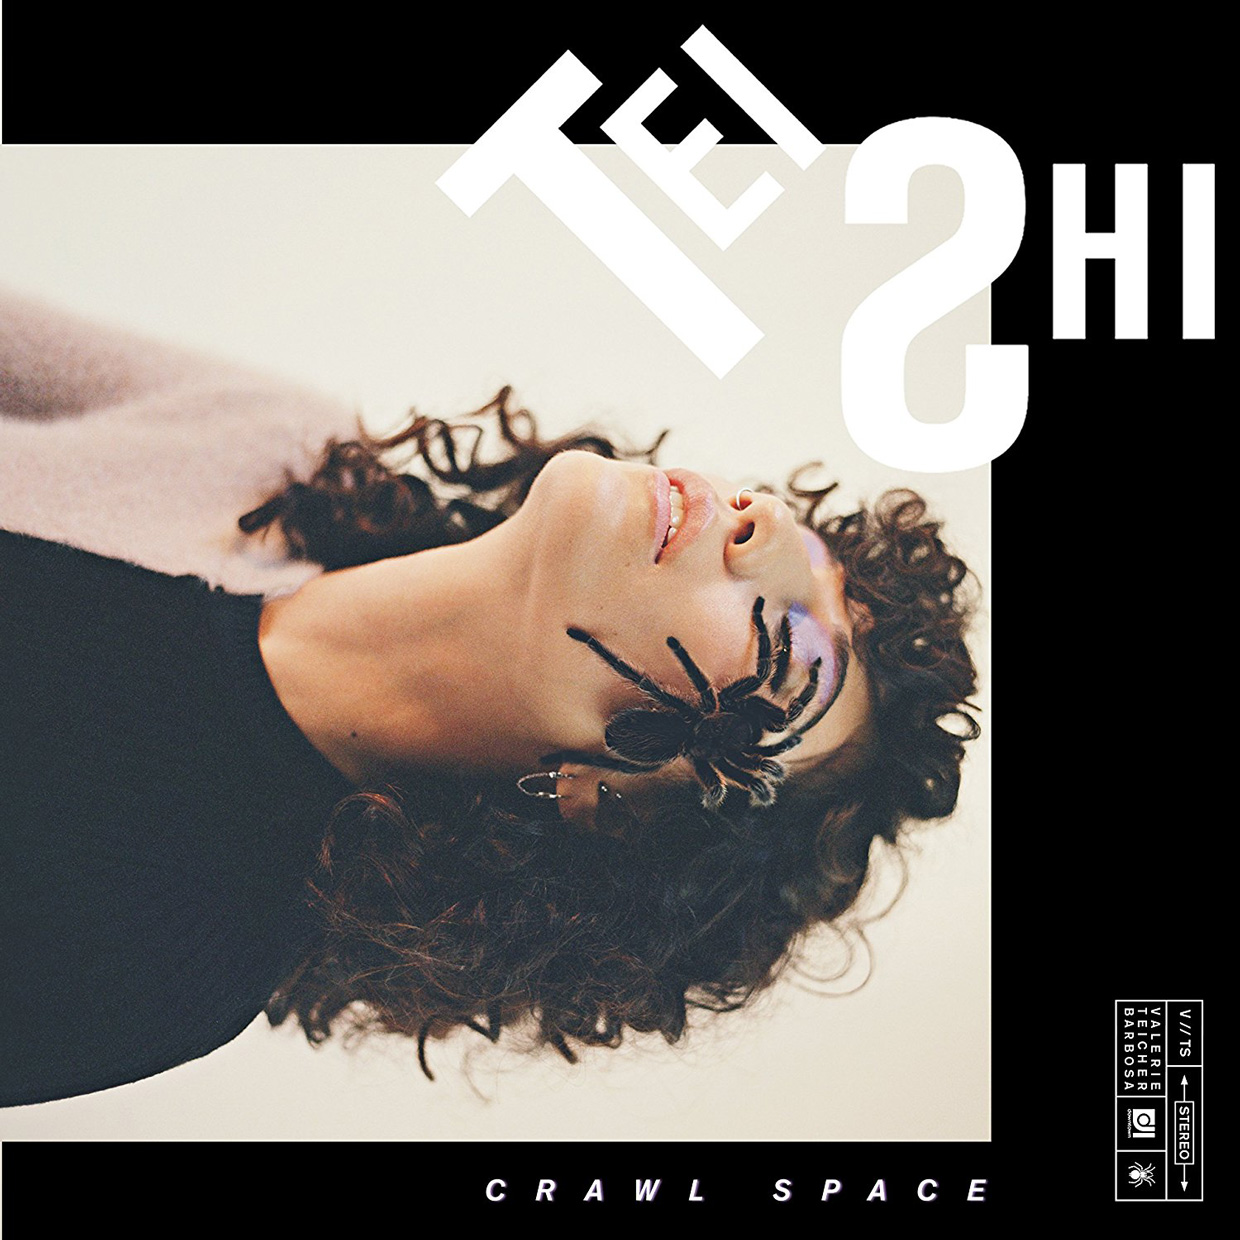 Tei-Shi-Crawl-Space-album-art-2017-a-billboard-1240.jpg